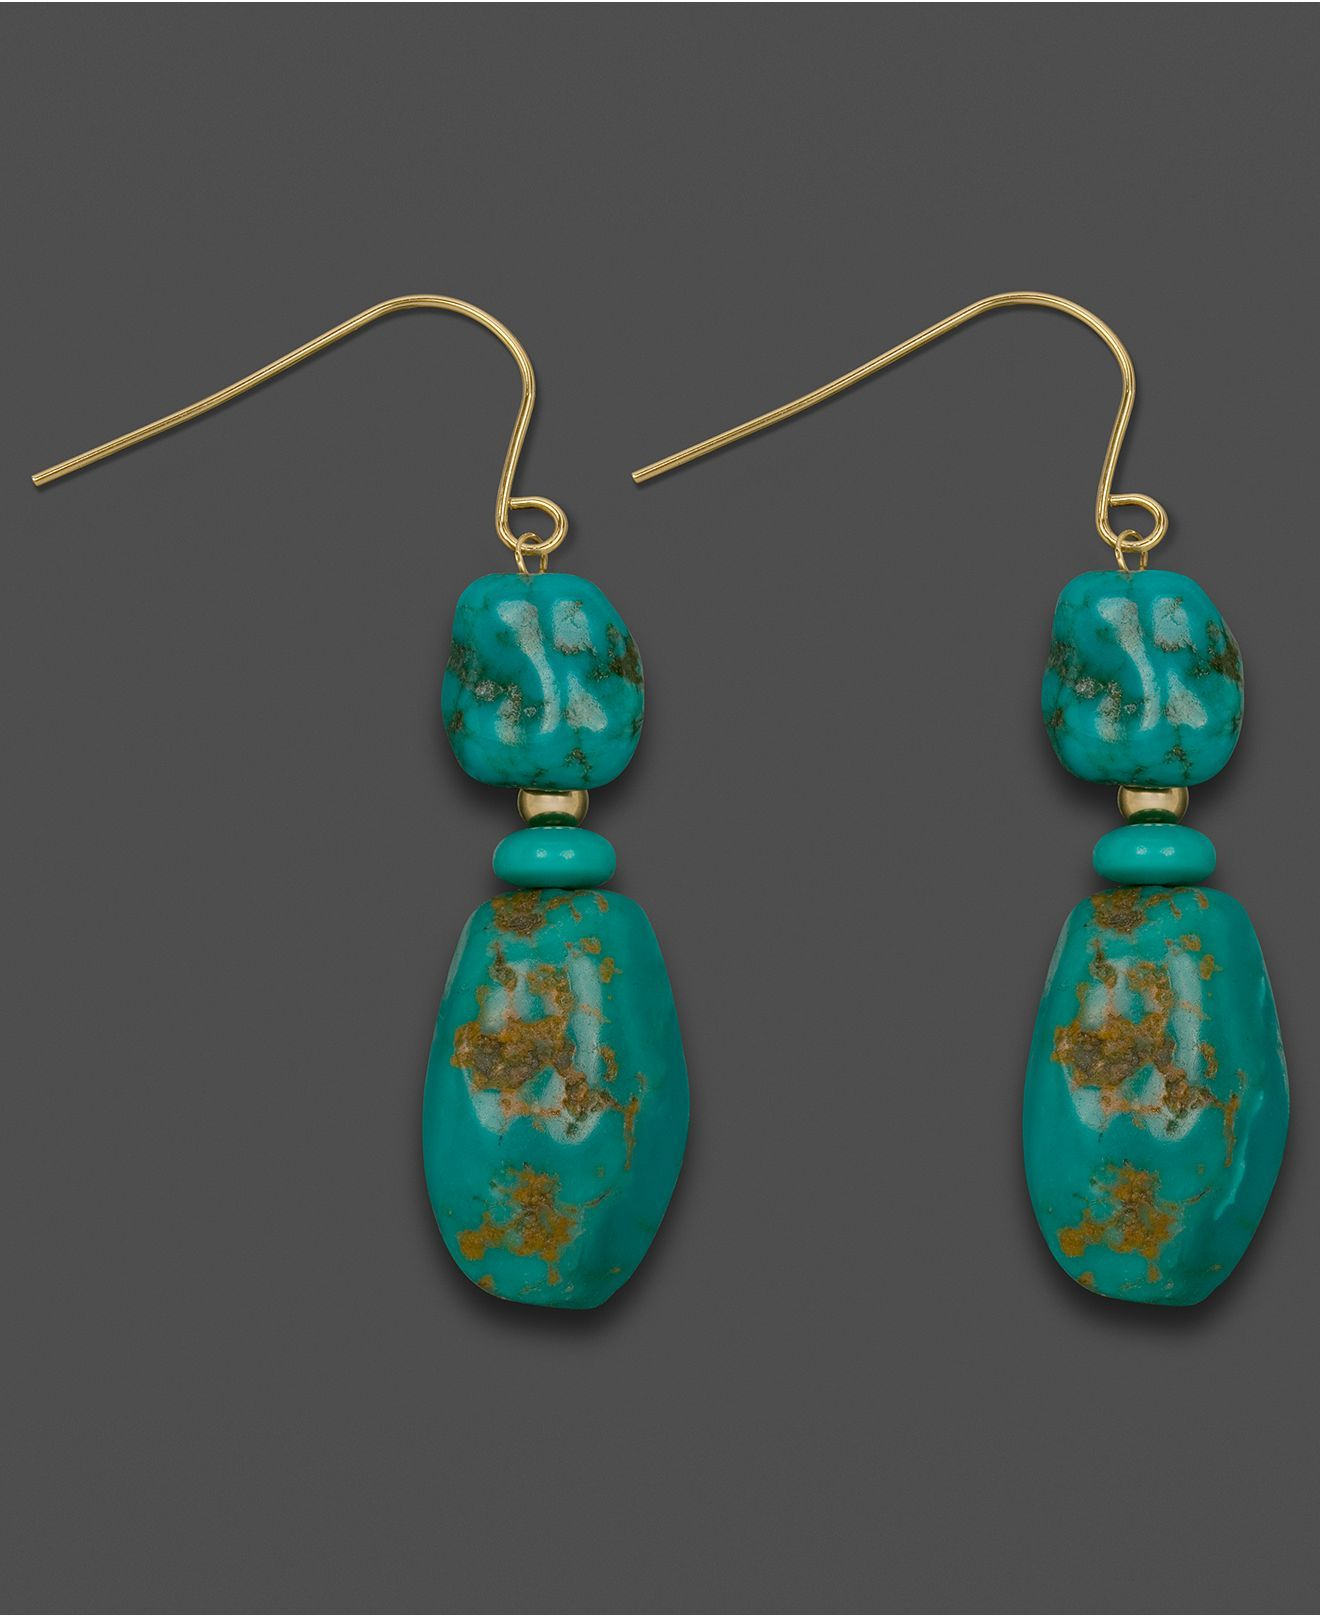 14k Gold Earrings, Turquoise Chip Drops - Earrings - Jewelry & Watches - Macy's